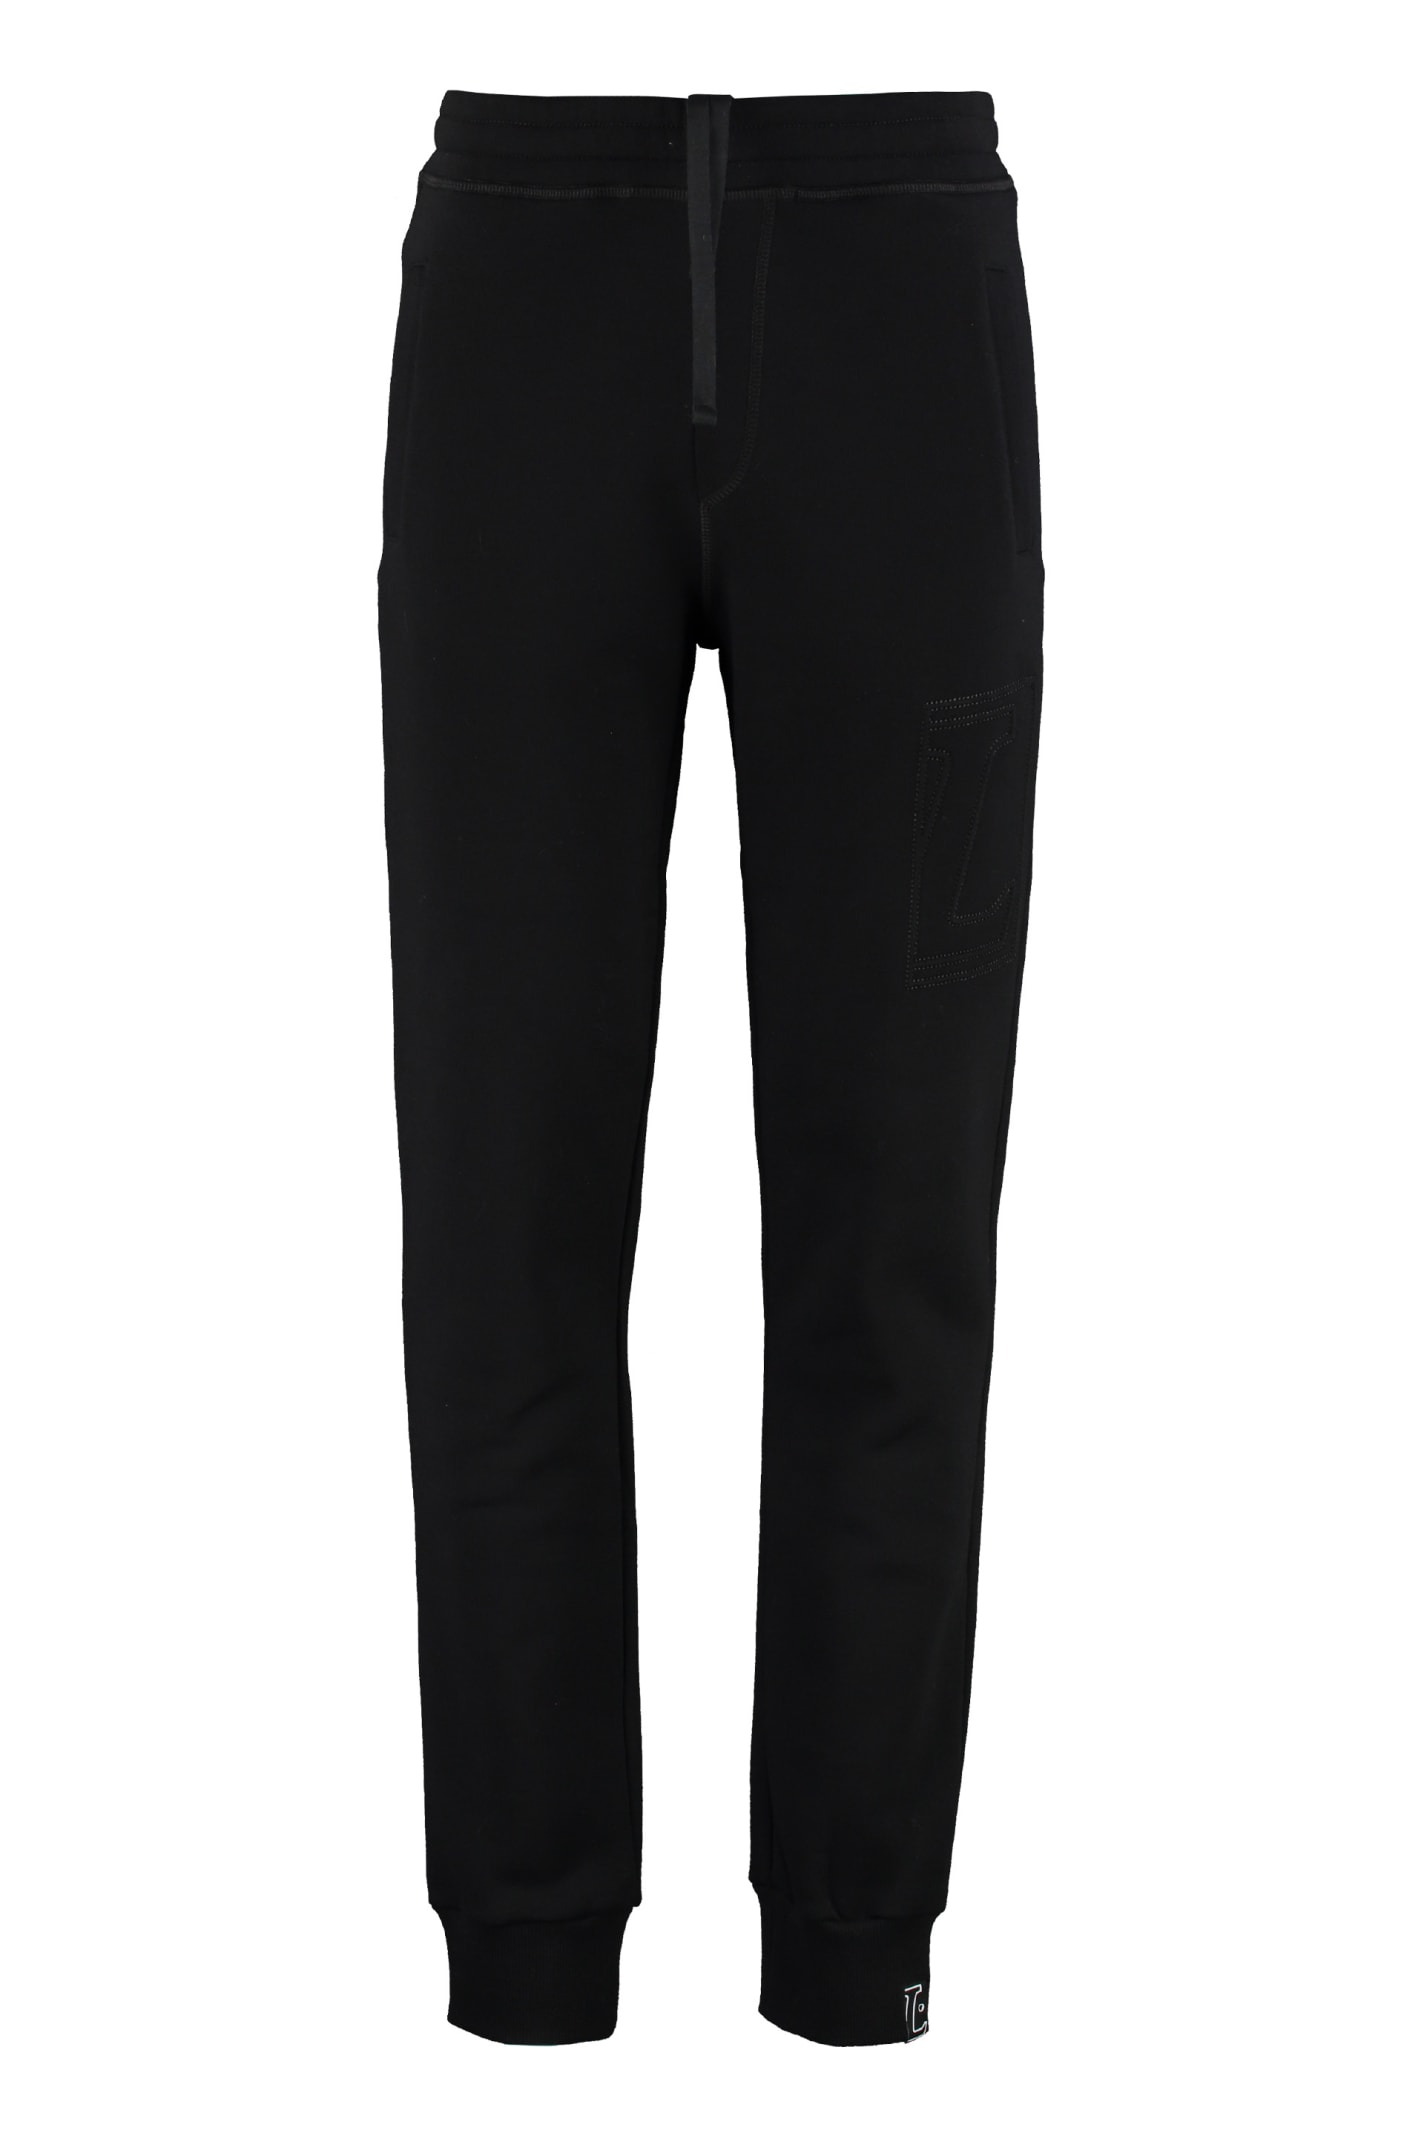 Lanvin Cotton Sweatpants With Embroidery